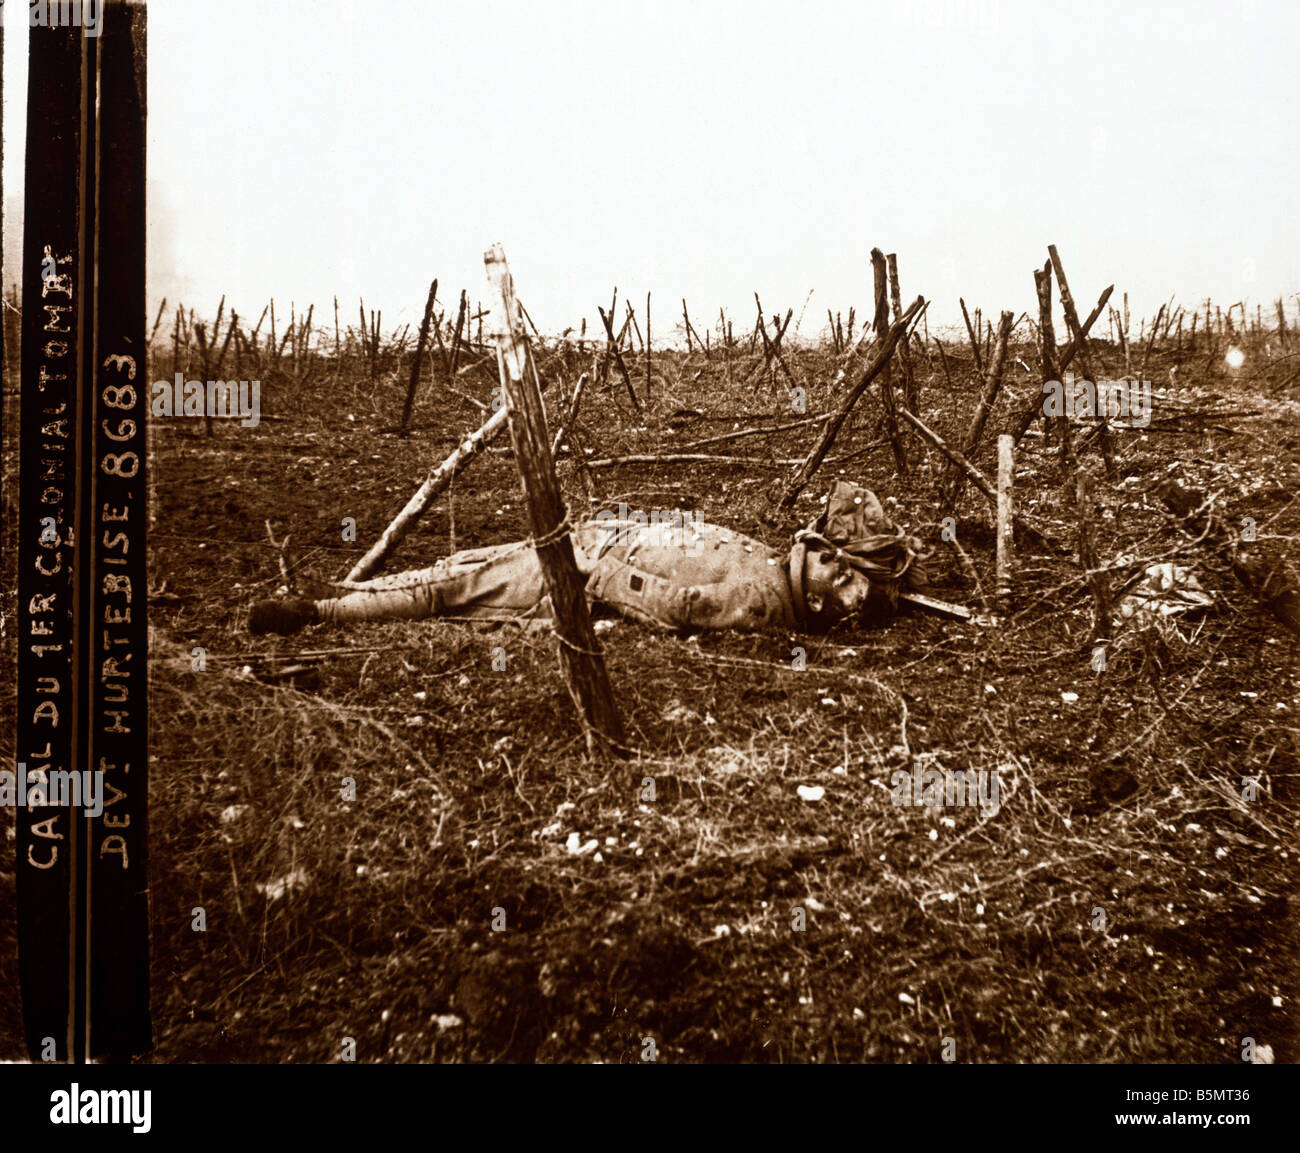 9FK 1917 4 16 A1 Fallen French soldier at Hurtebise 1917 World War 1 1914 18 France Battle of the Aisne and of Champagne - Stock Image